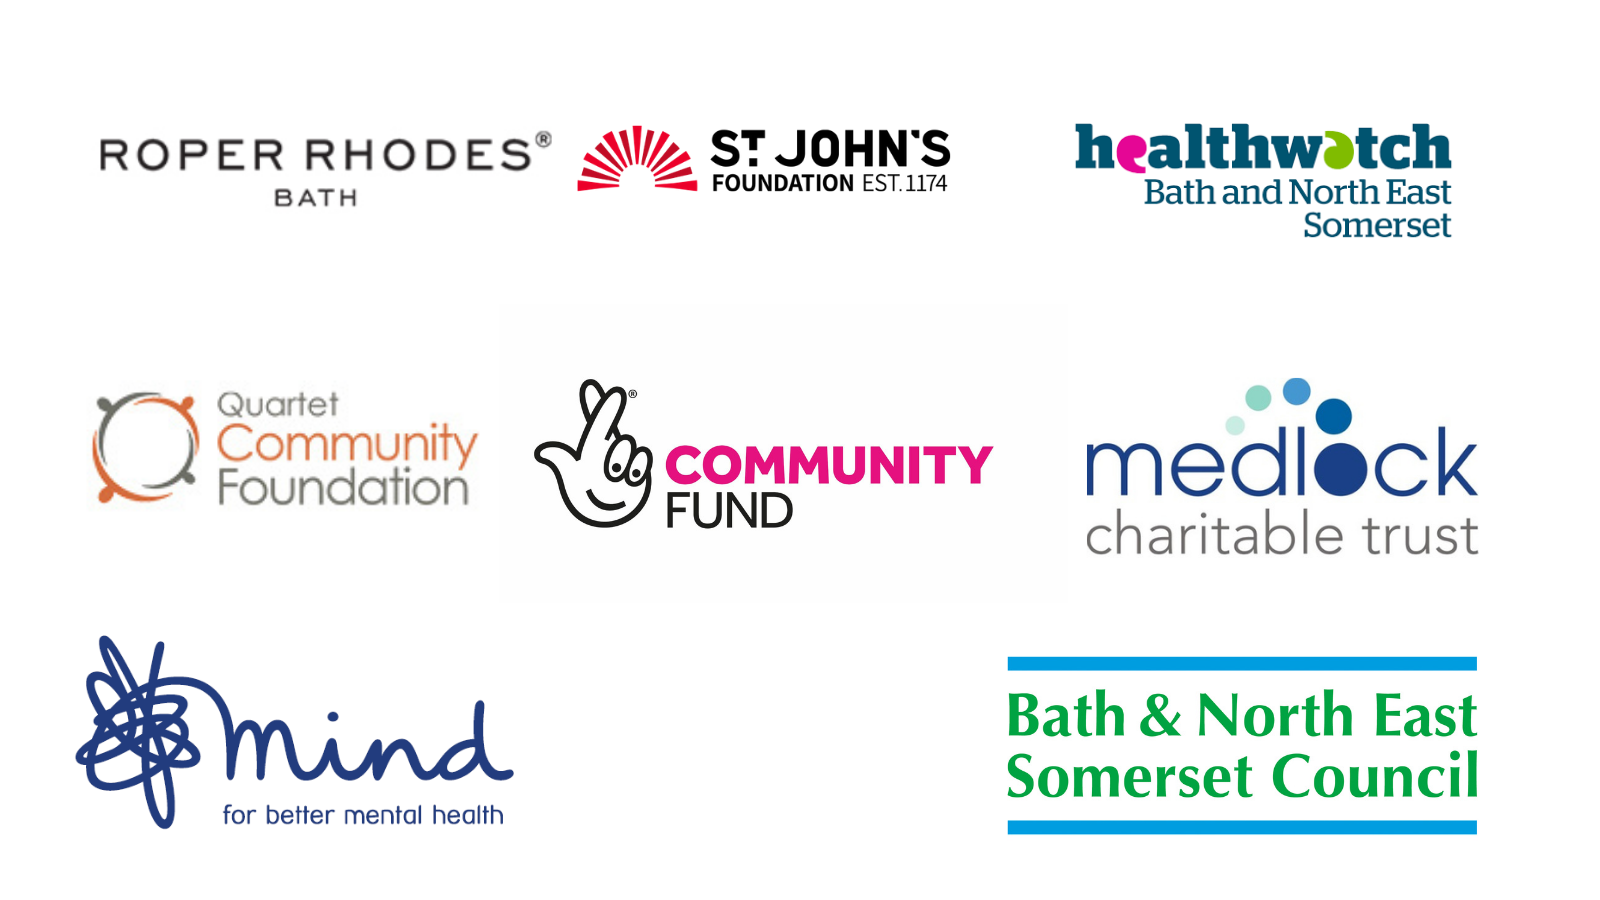 Our recent funders